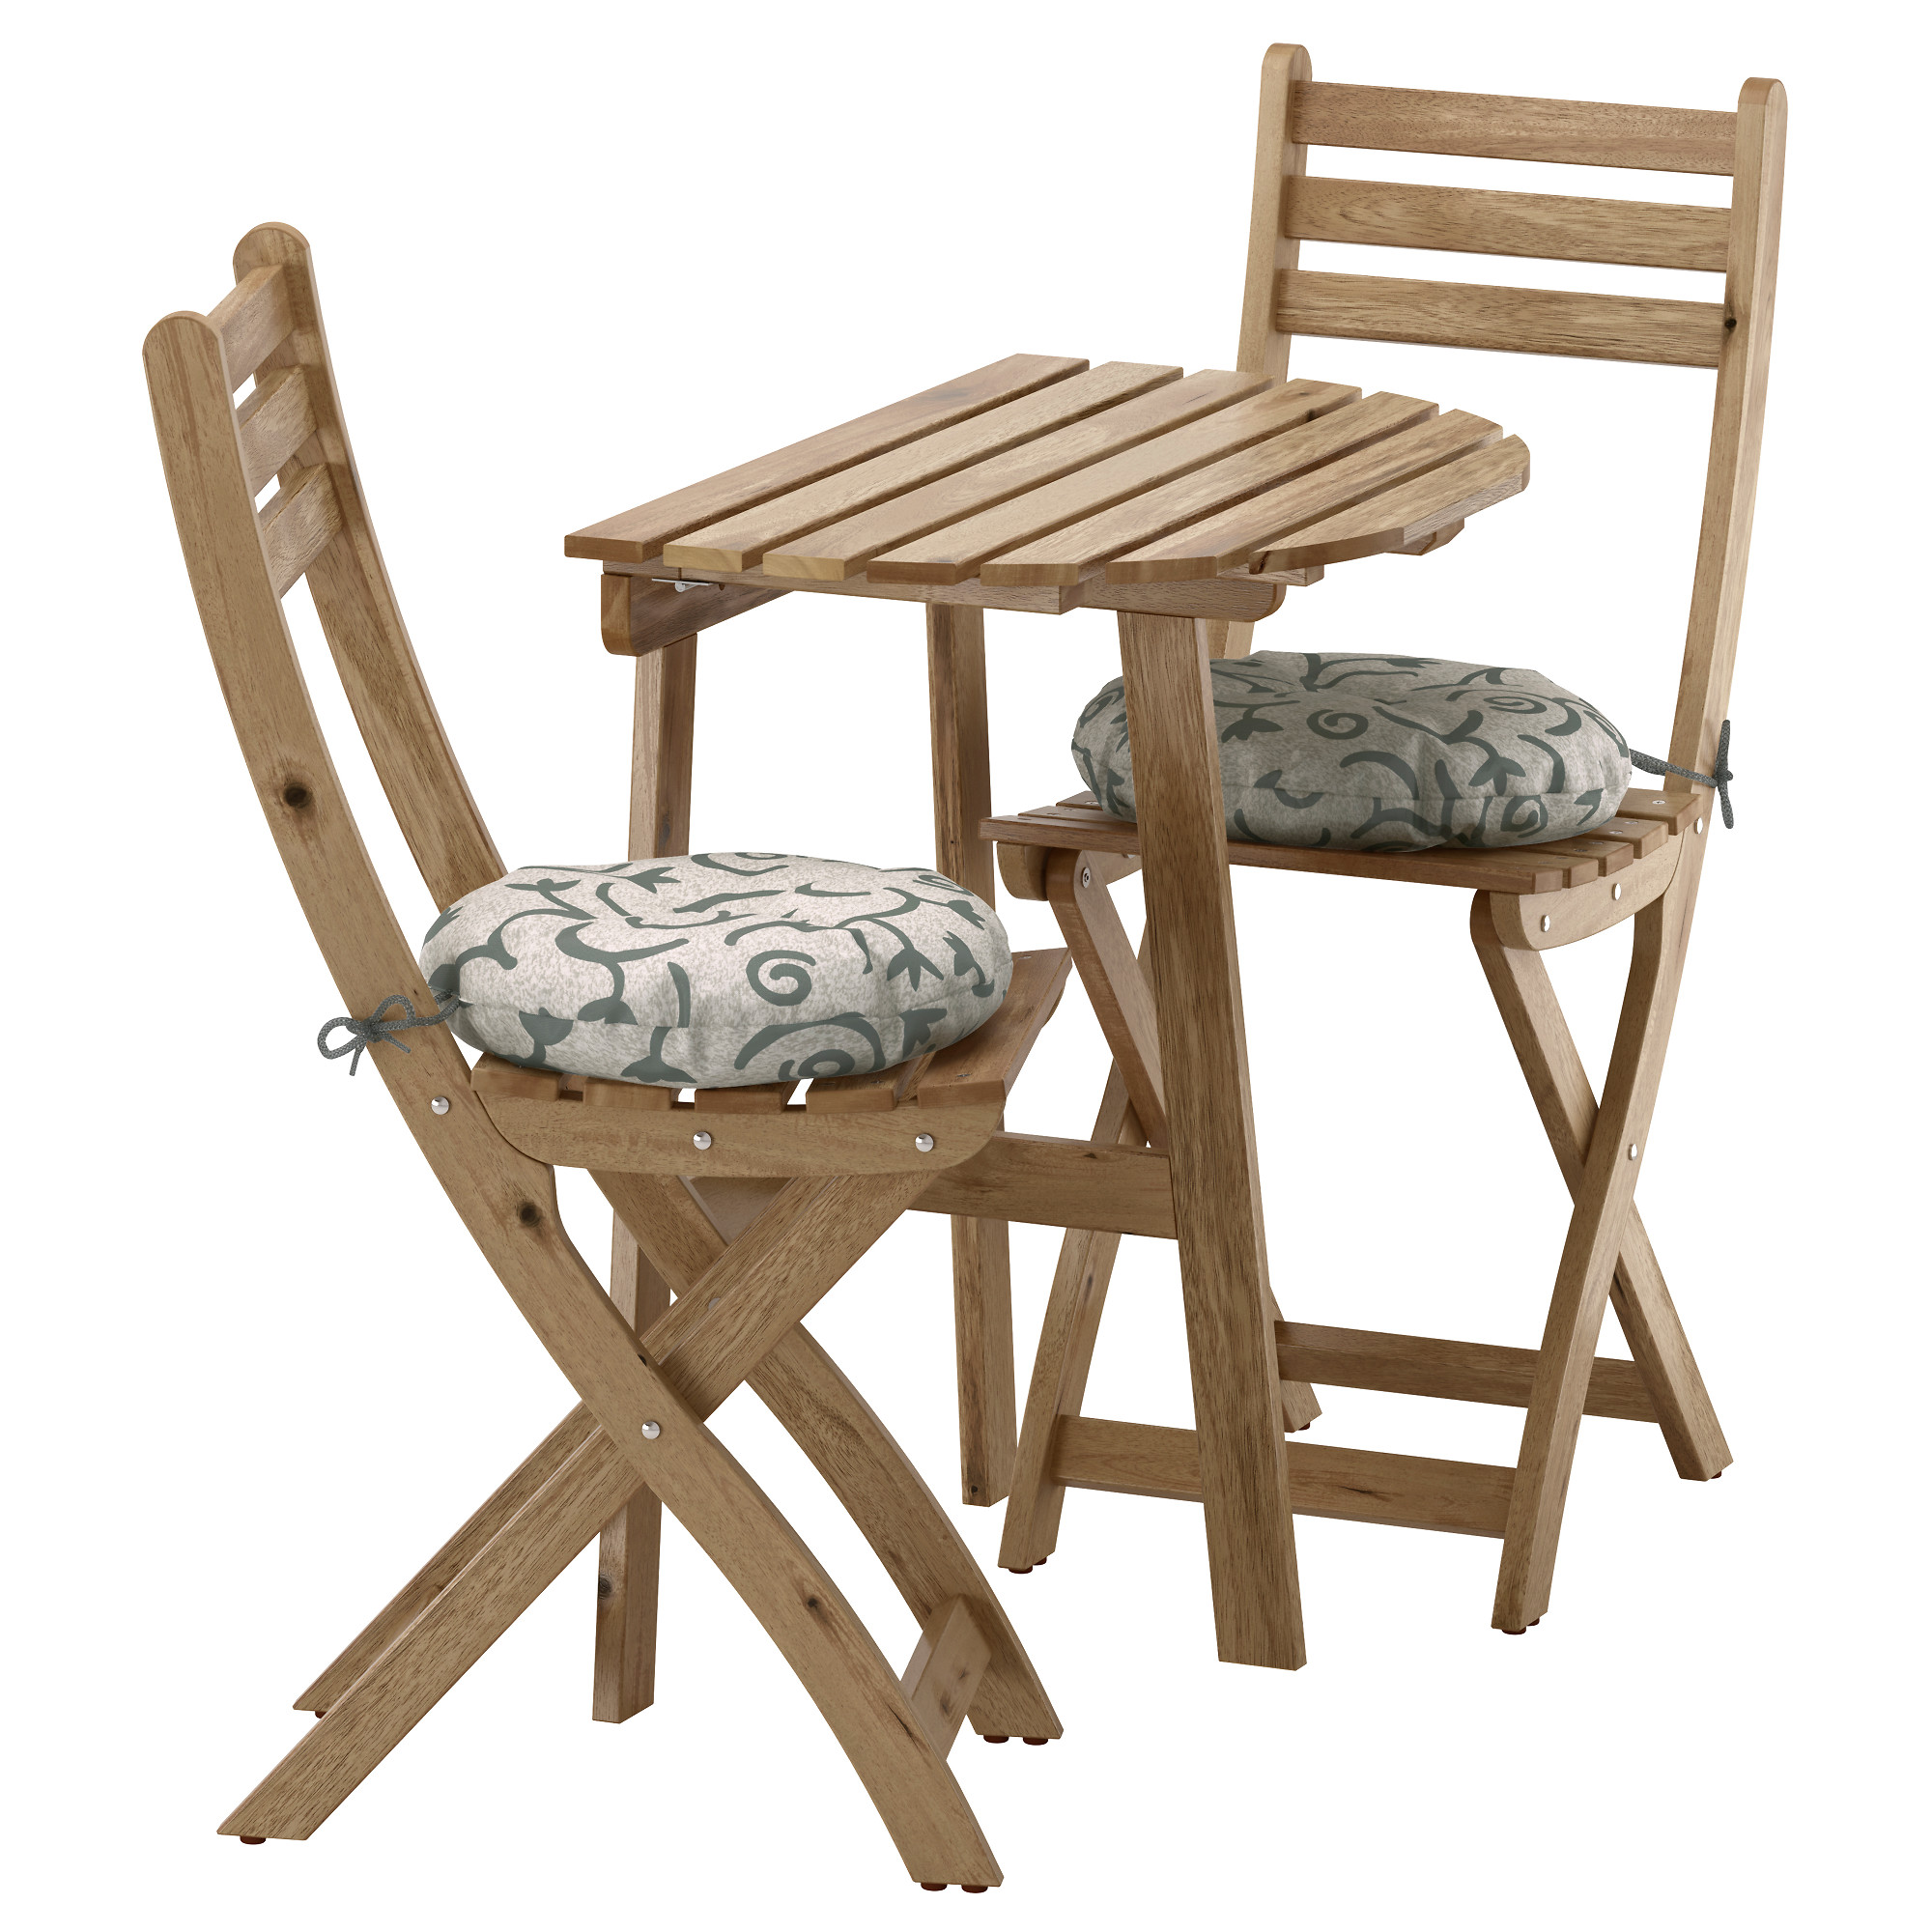 ASKHOLMEN Wall table 2 folding chairs outdoor Askholmen gray